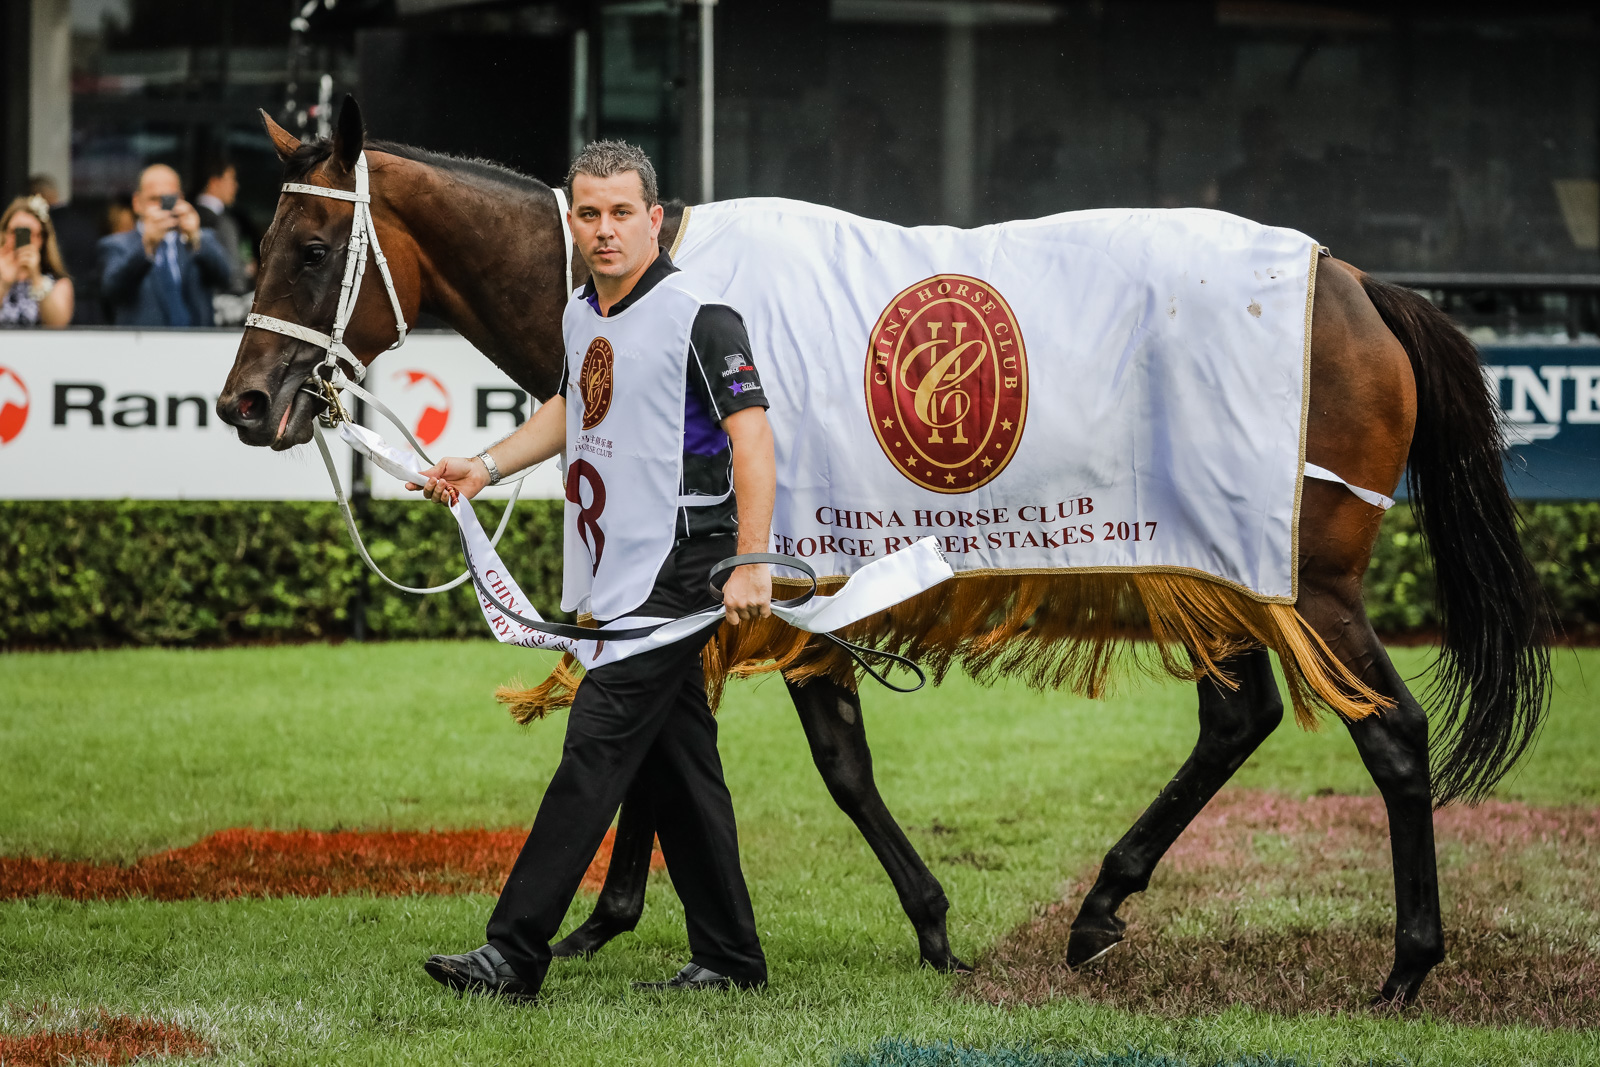 CHC China Horse Club at The 2017 Golden Slipper. Picture © Salty Dingo 2017